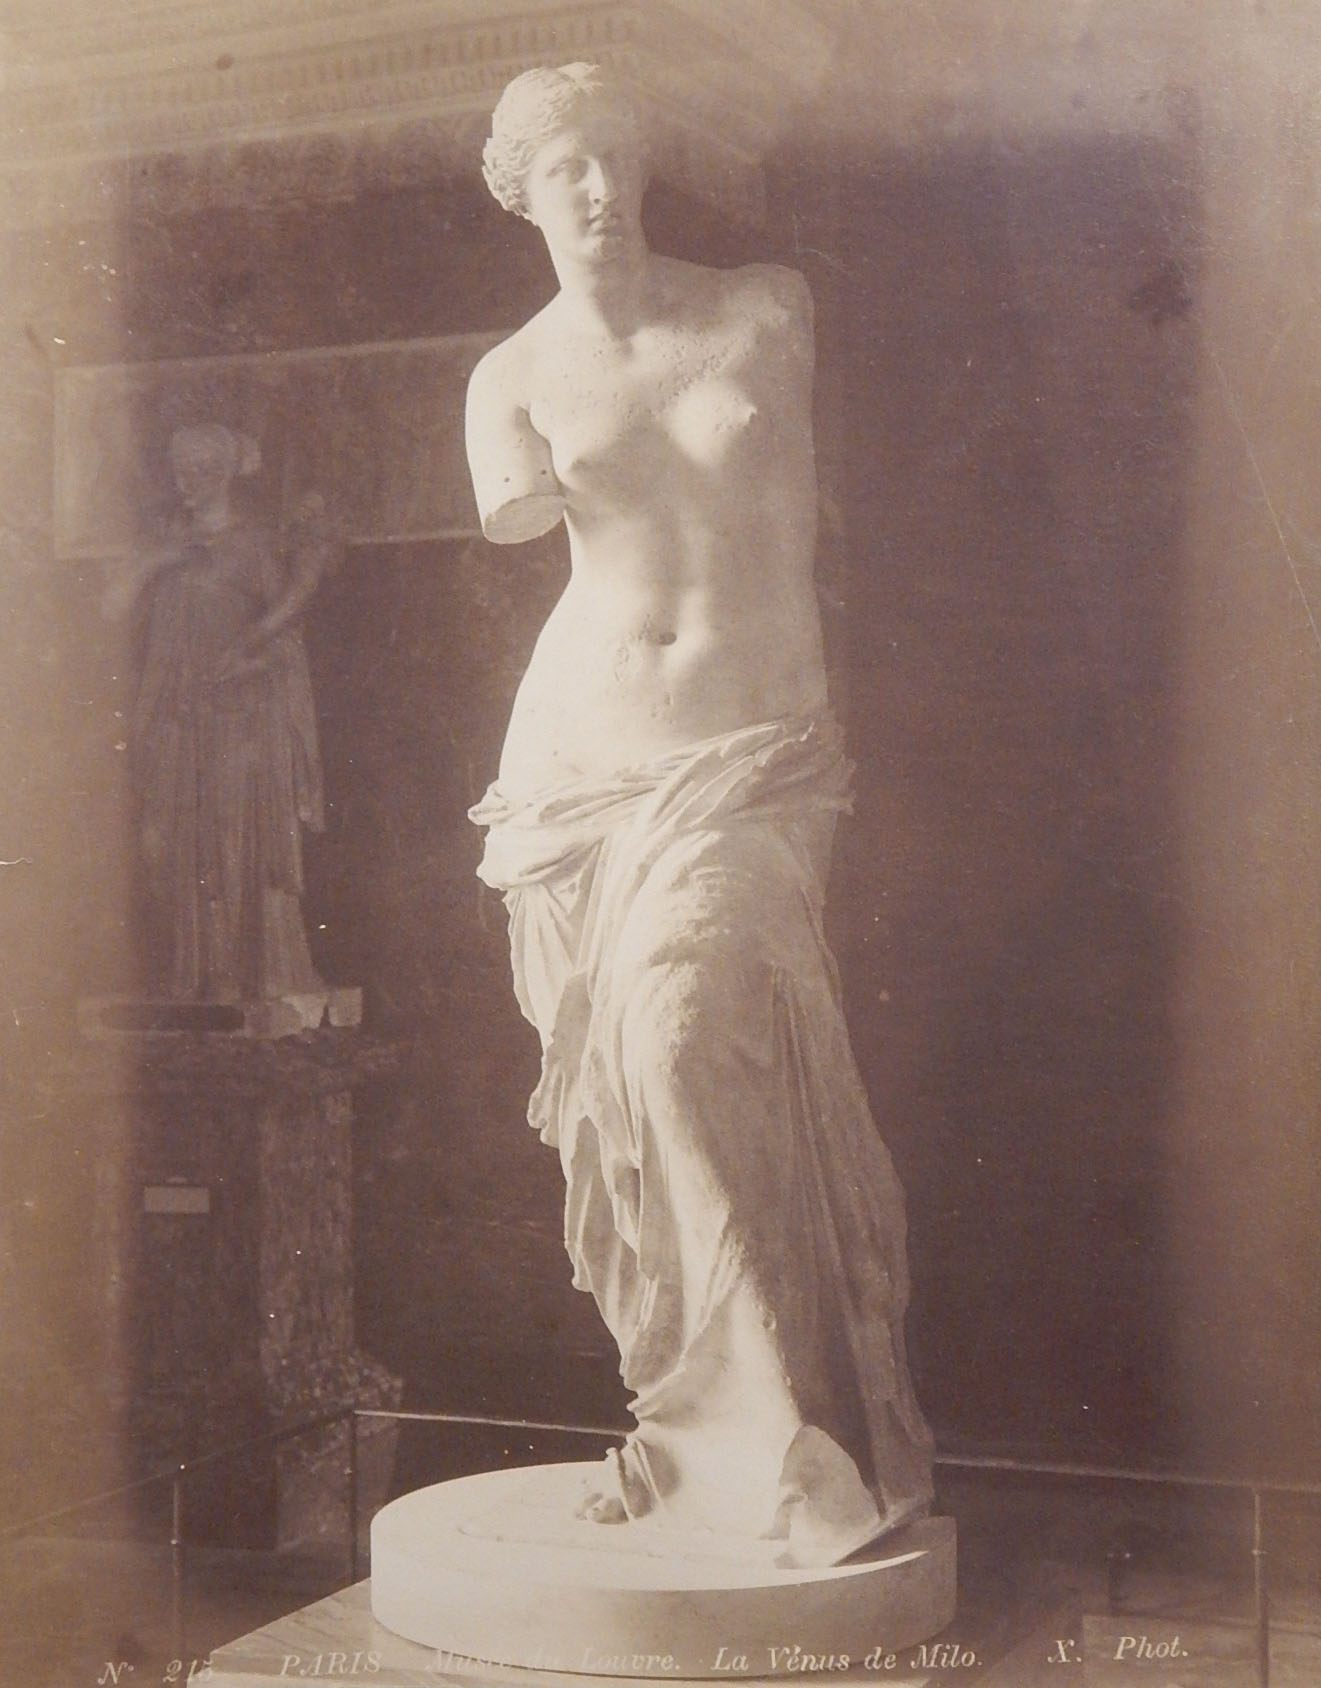 Photo of the Venus de Milo at the Louvre, Paris, France